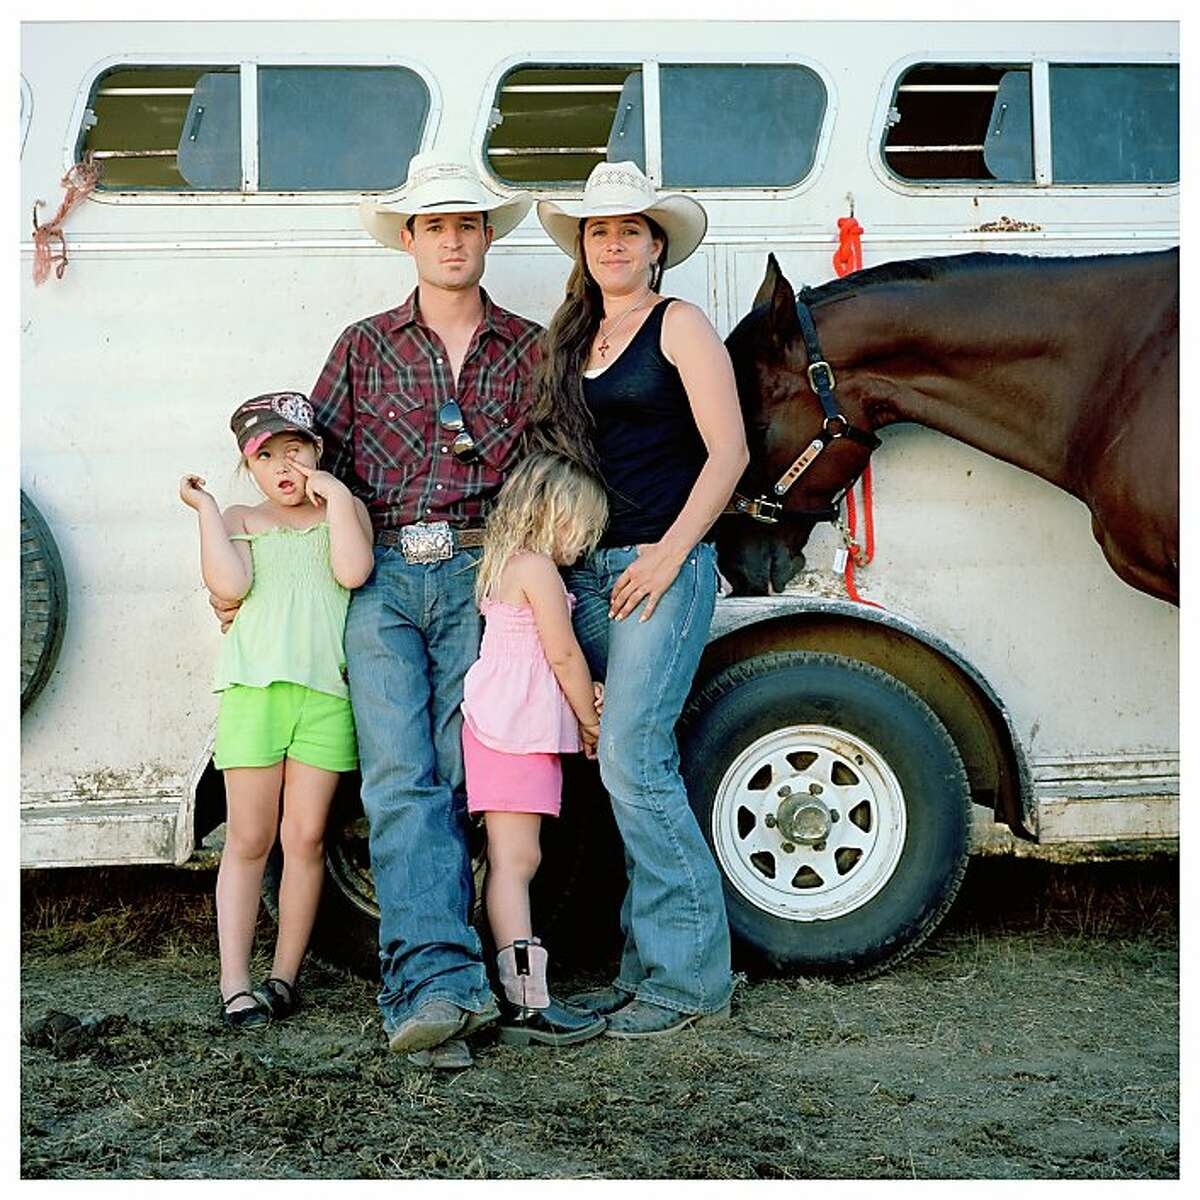 OV-RURAL 2.jpg Keith and Ileah Roquemore, with daughters Raci and Riata and horse D.H., at the 2011 Mendocino County Fair Rodeo in Boonville. Photo by Lisa M. Hamilton